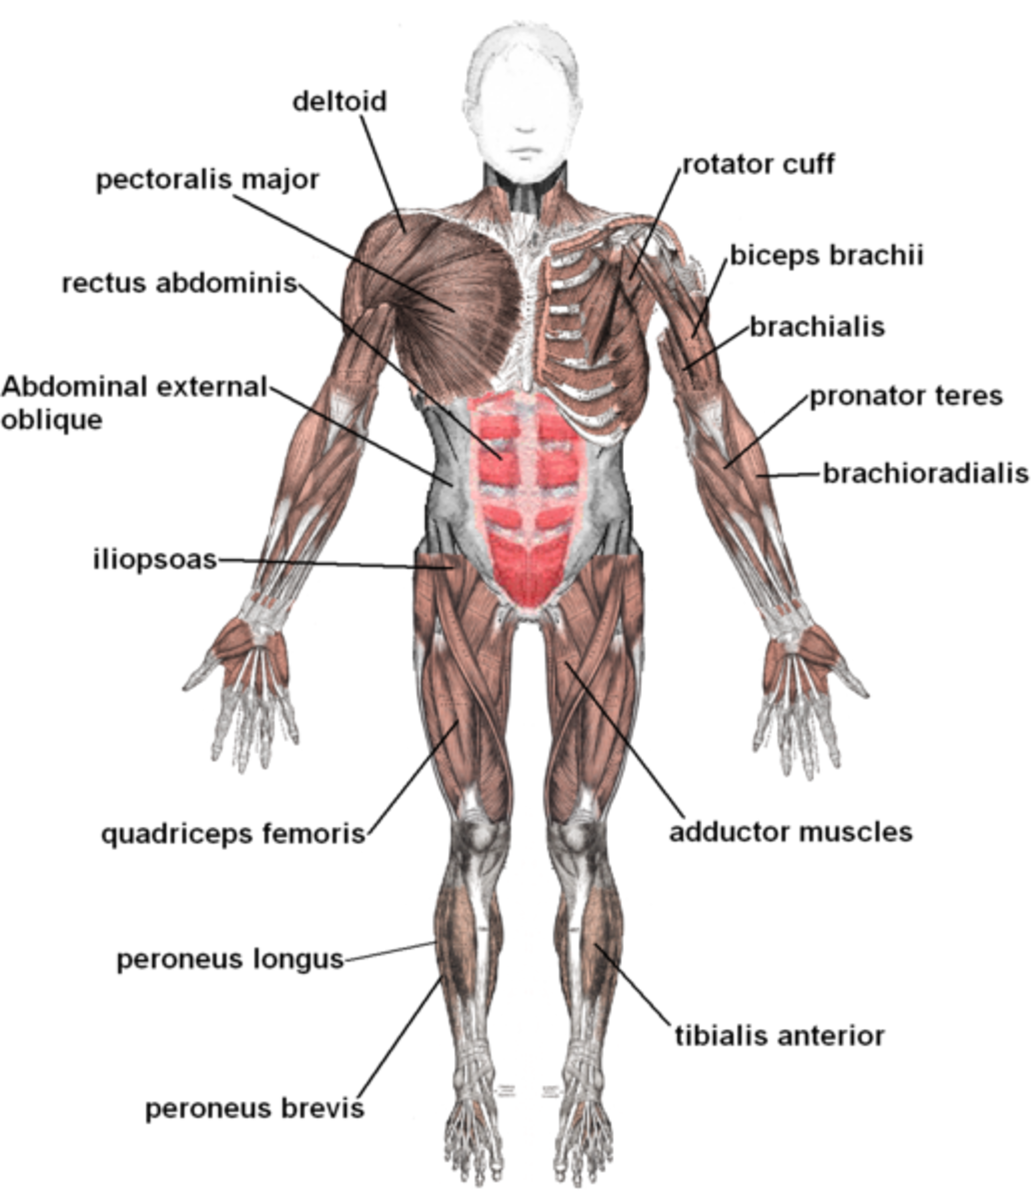 Human Muscular System—What\'s the Busiest Muscle in the Body? | Owlcation